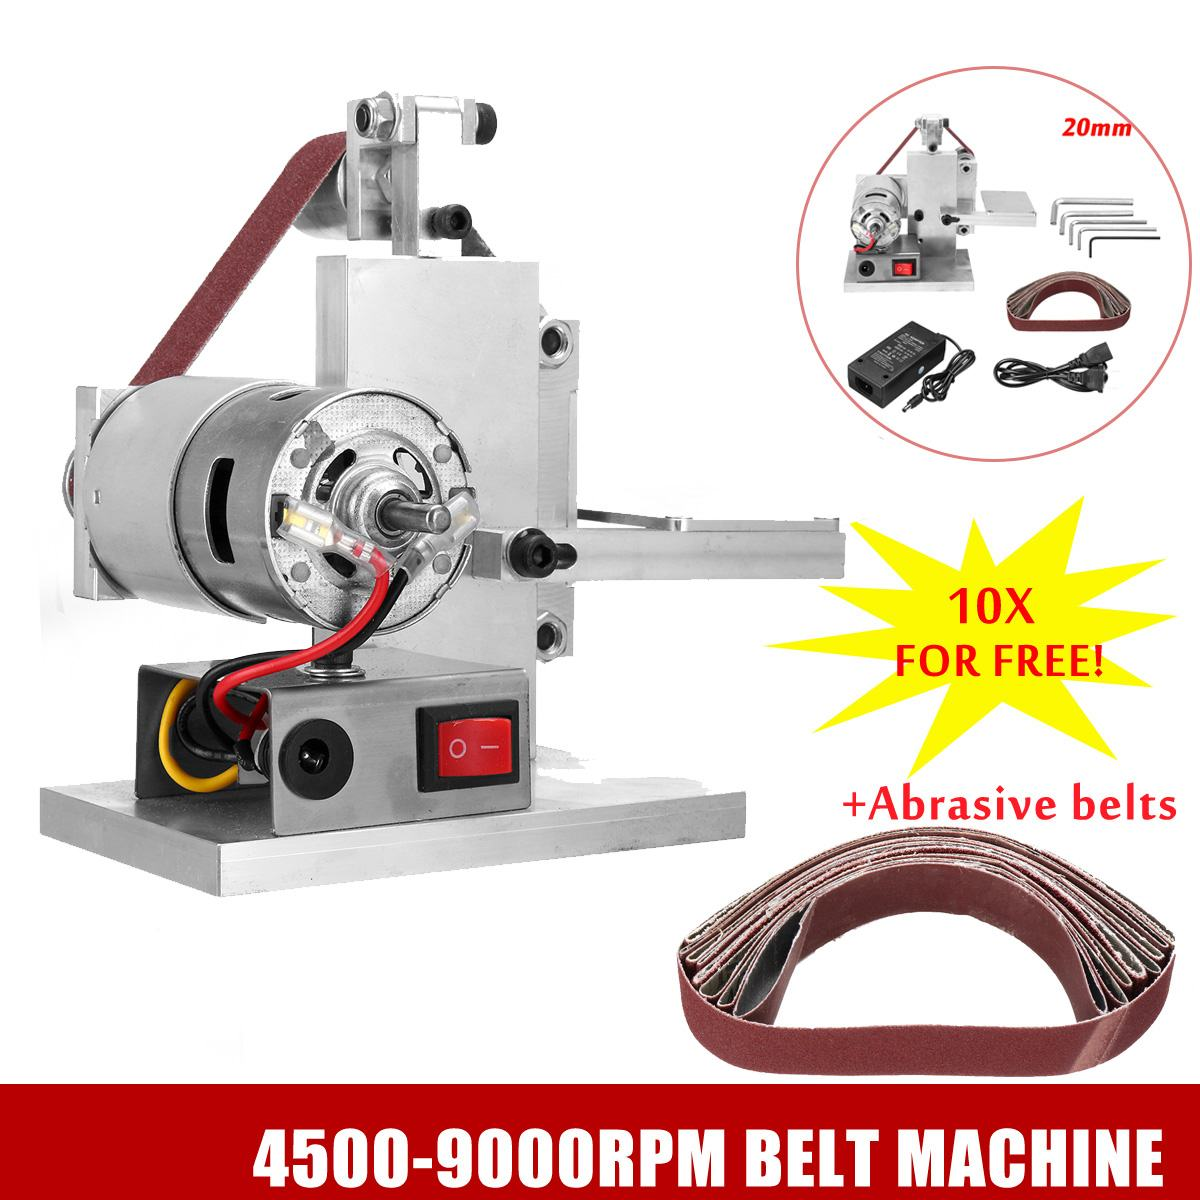 110-240V DIY Mini Belt Sander Knife Edge Sharpener Grinding Polishing Machine 60/80/120/150/180/240/320/400/600/800 Mesh